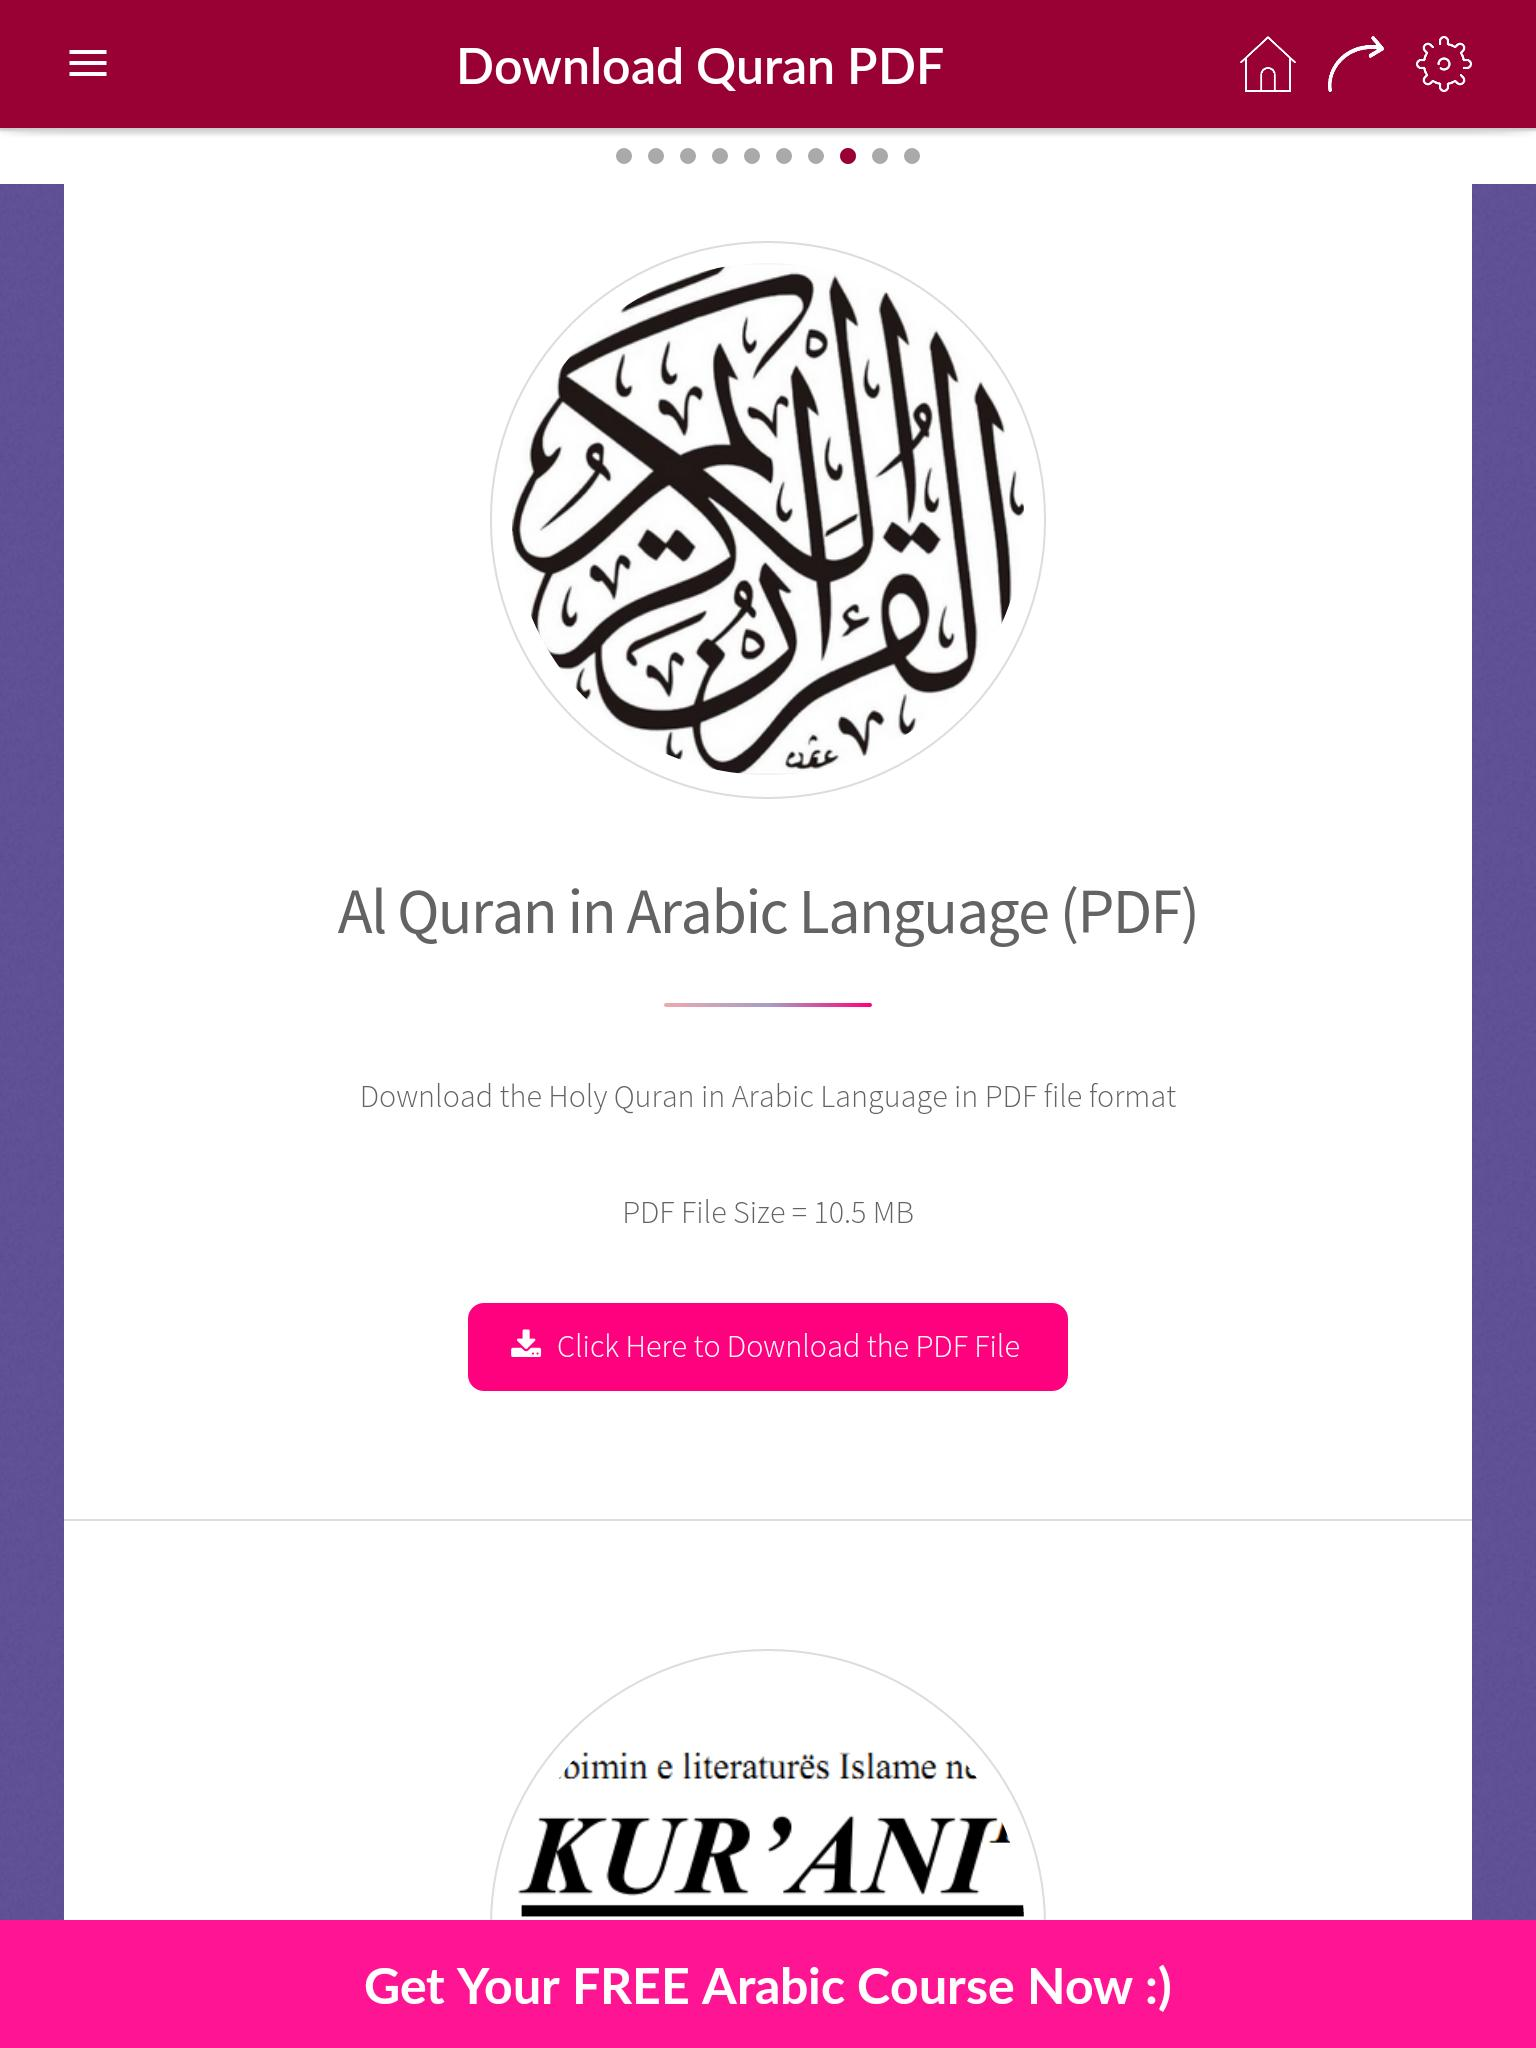 Ali Alhuthaifi - Holy Quran for Android - APK Download